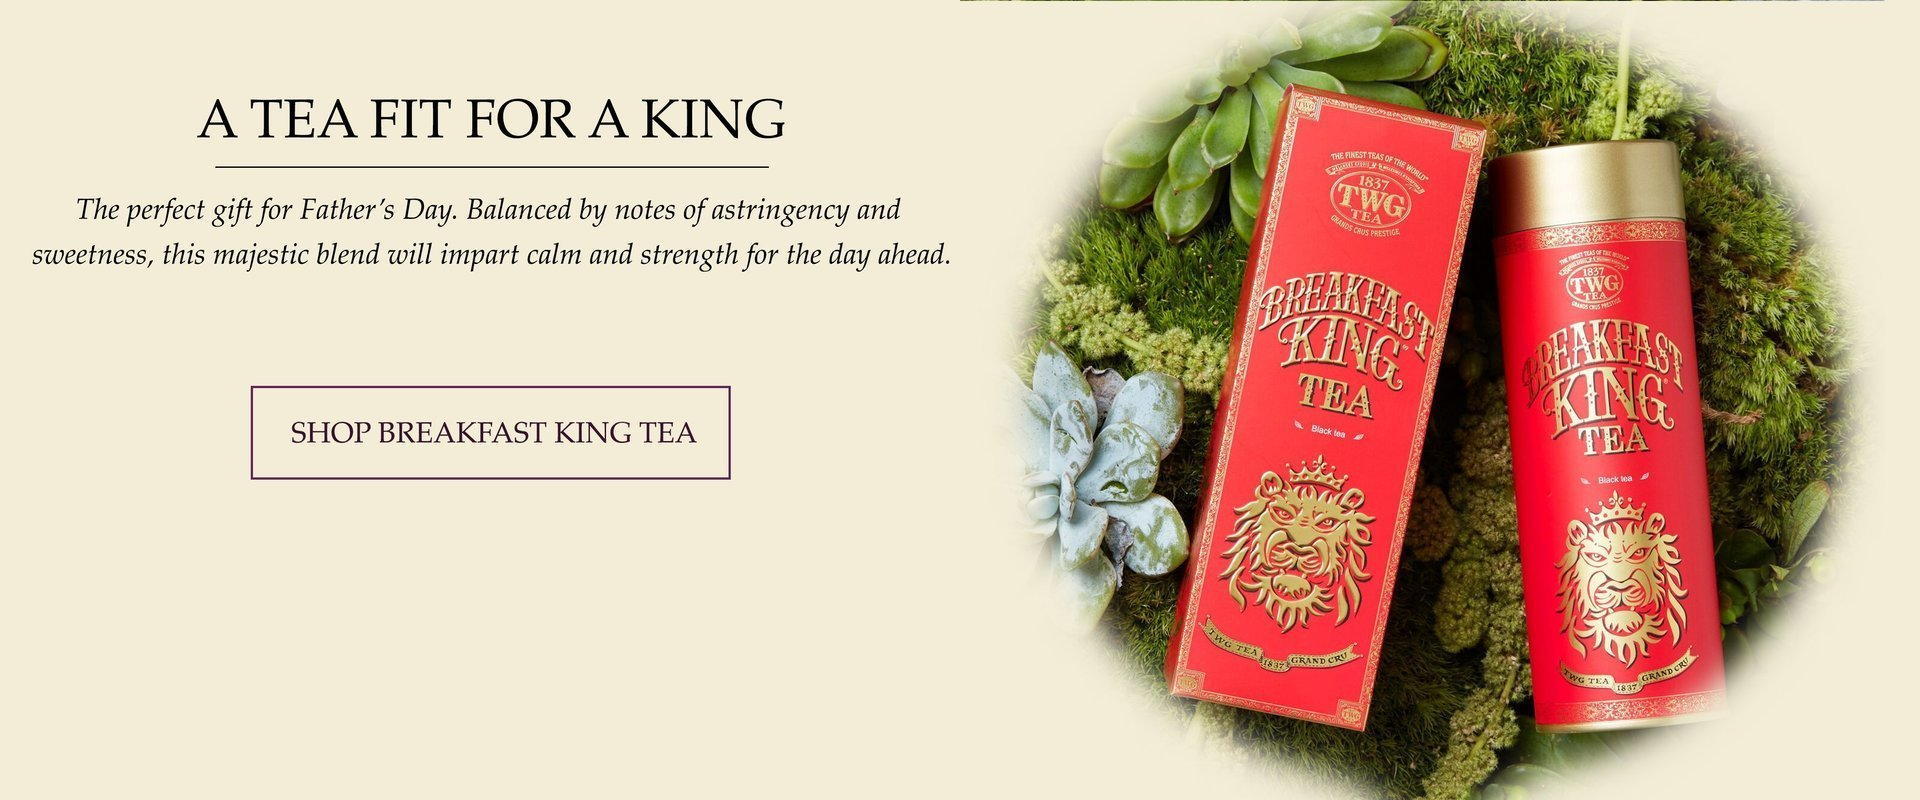 Shop TWG Tea in Vancouver Canada Matcha, Matcha Accessories, Matcha Whisk, Teapot, Japanese Teas